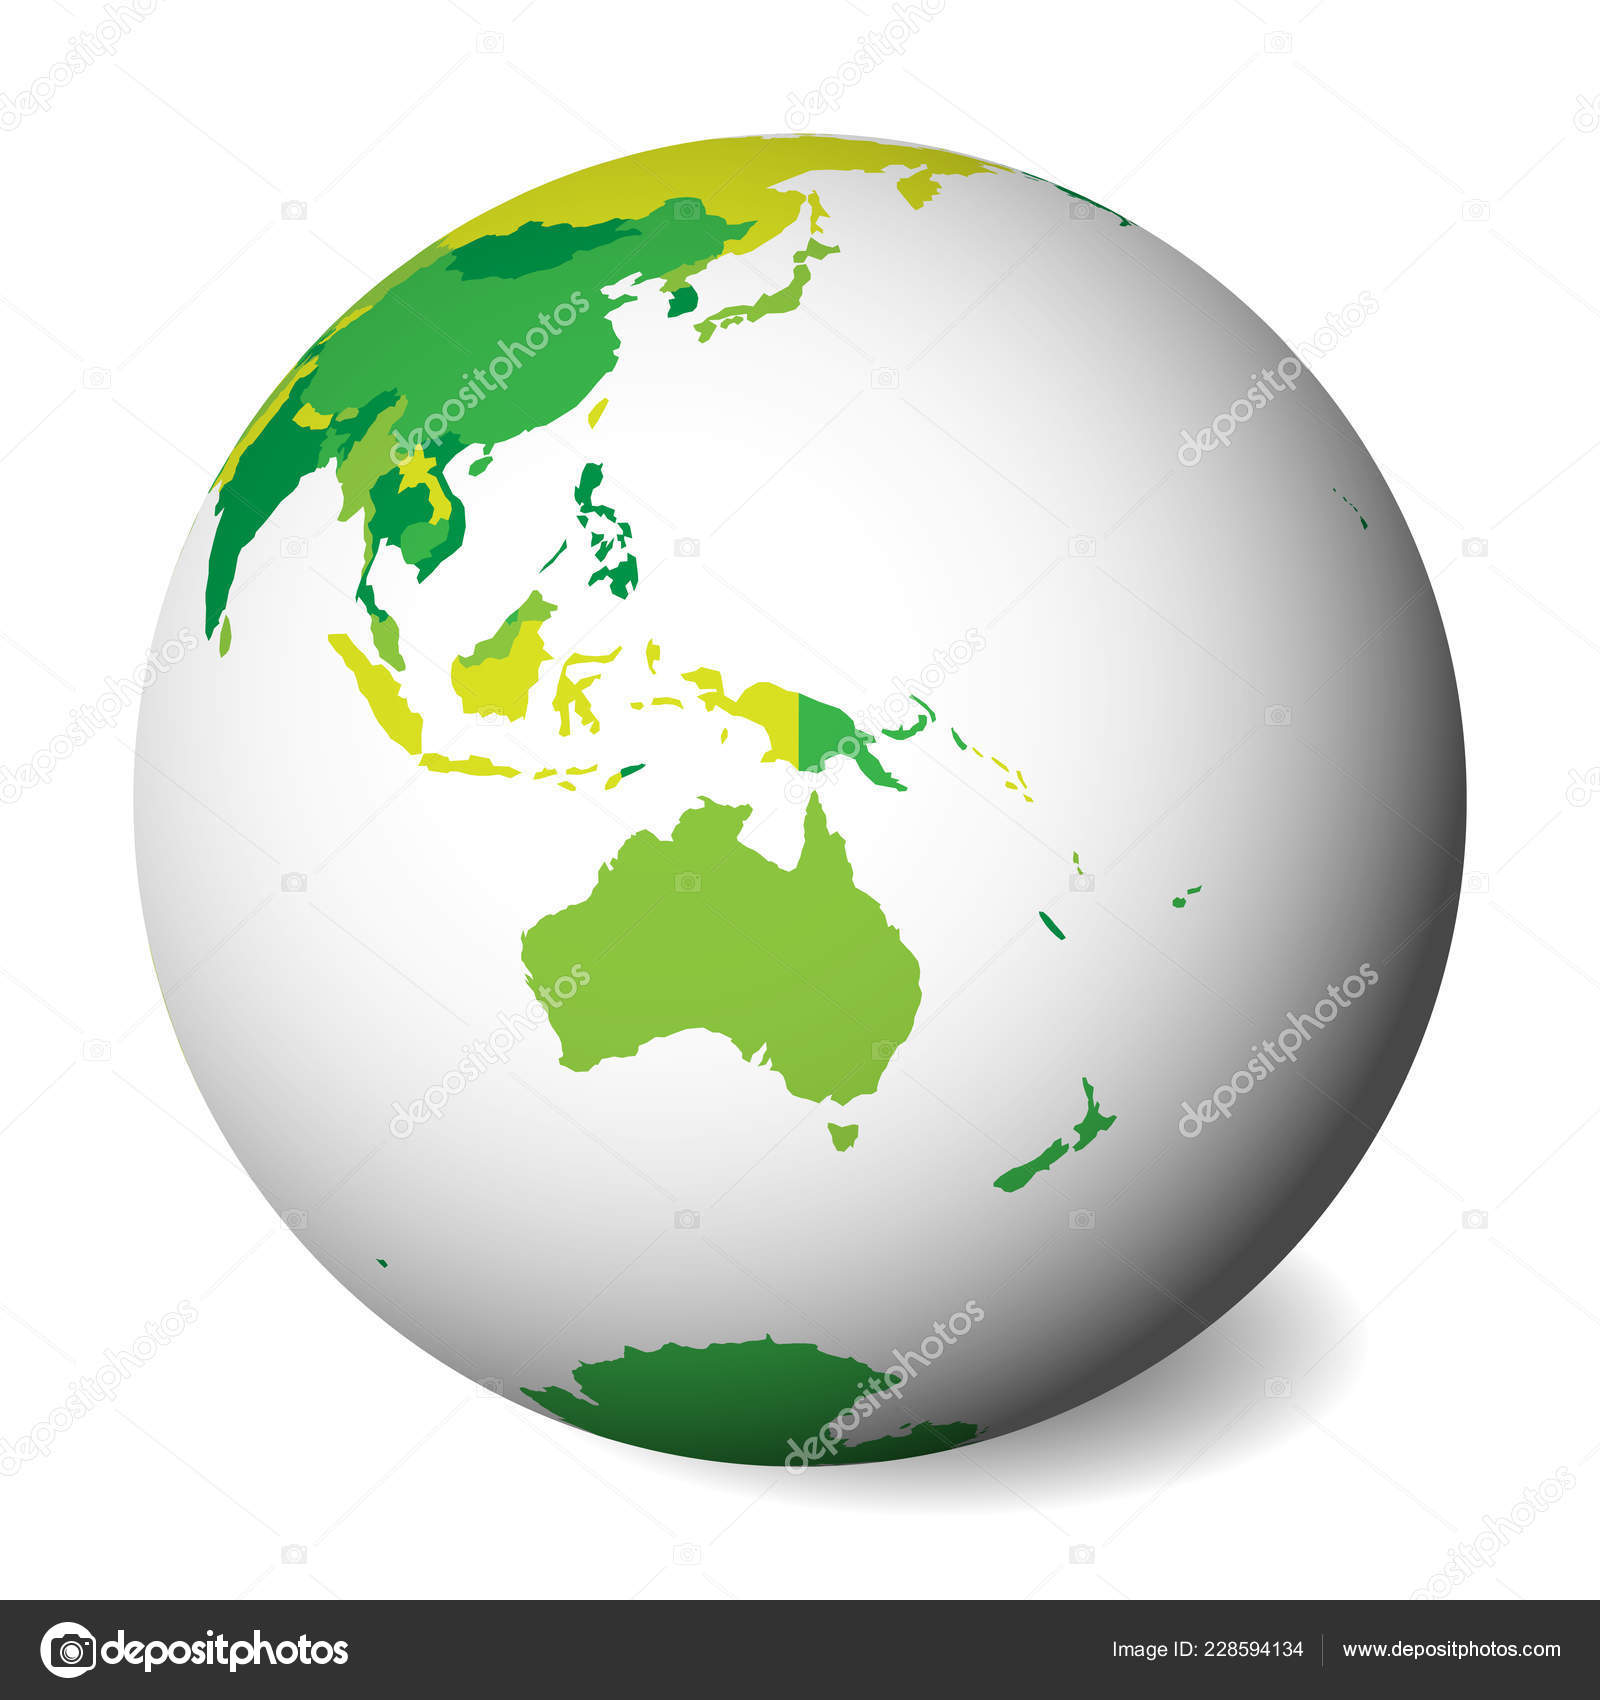 Map Of Australia Blank.Blank Political Map Of Australia 3d Earth Globe With Green Map